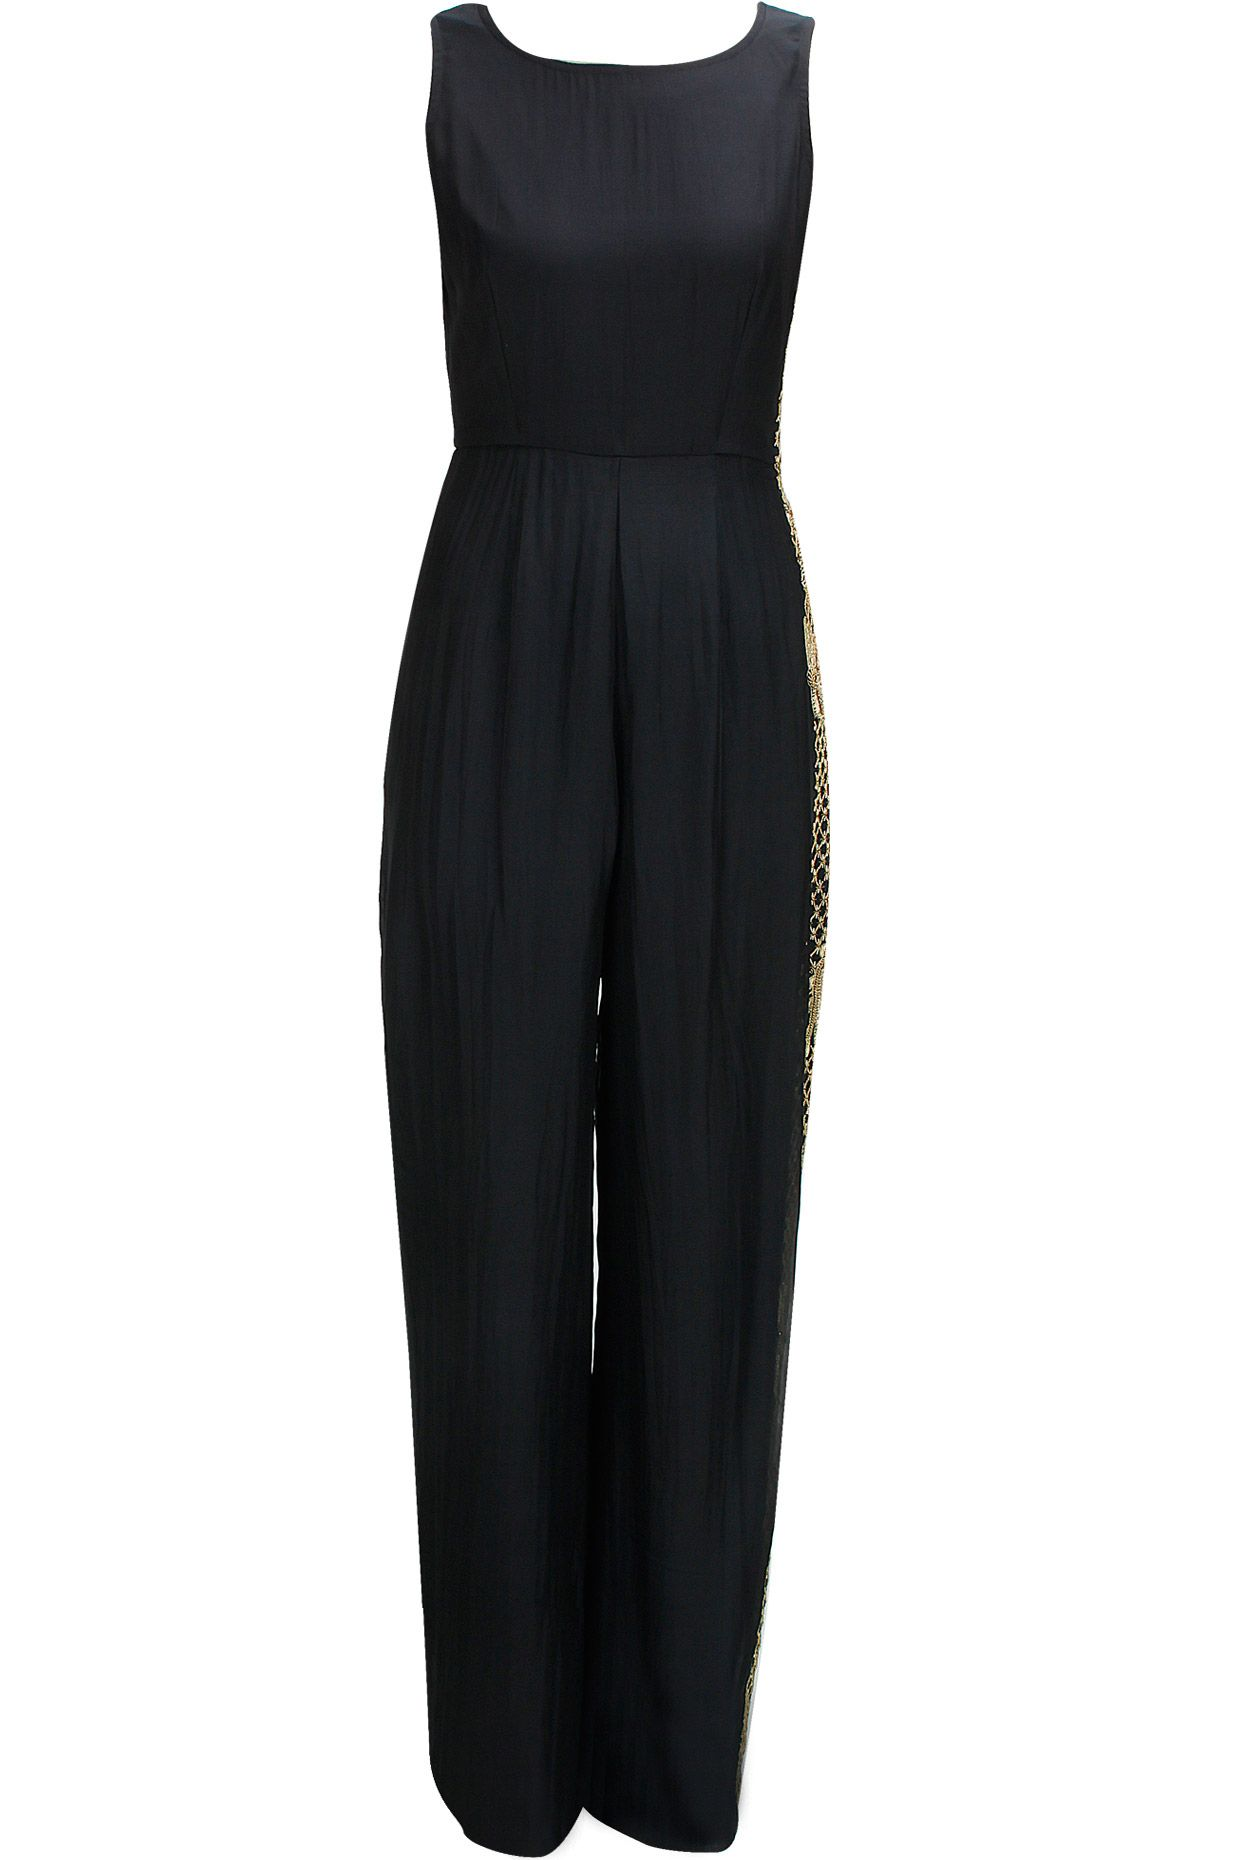 Black embroidered jumpsuit with atttaced drape available only at